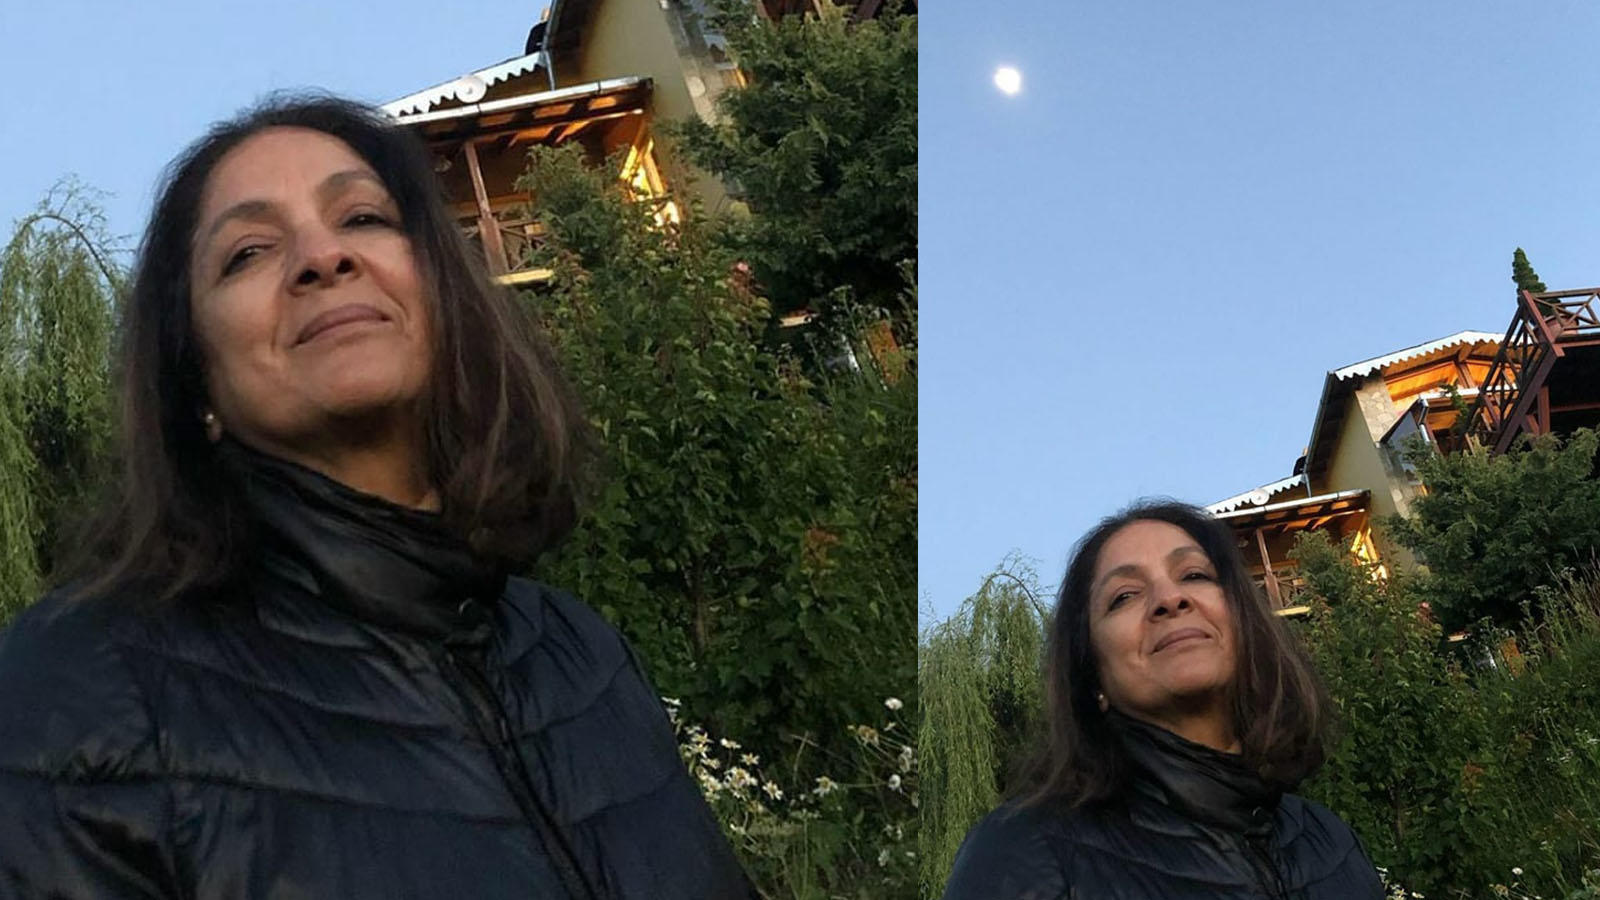 main-mera-ghar-aur-chand-neena-gupta-shares-a-pretty-selfie-against-her-house-in-mukteshwar